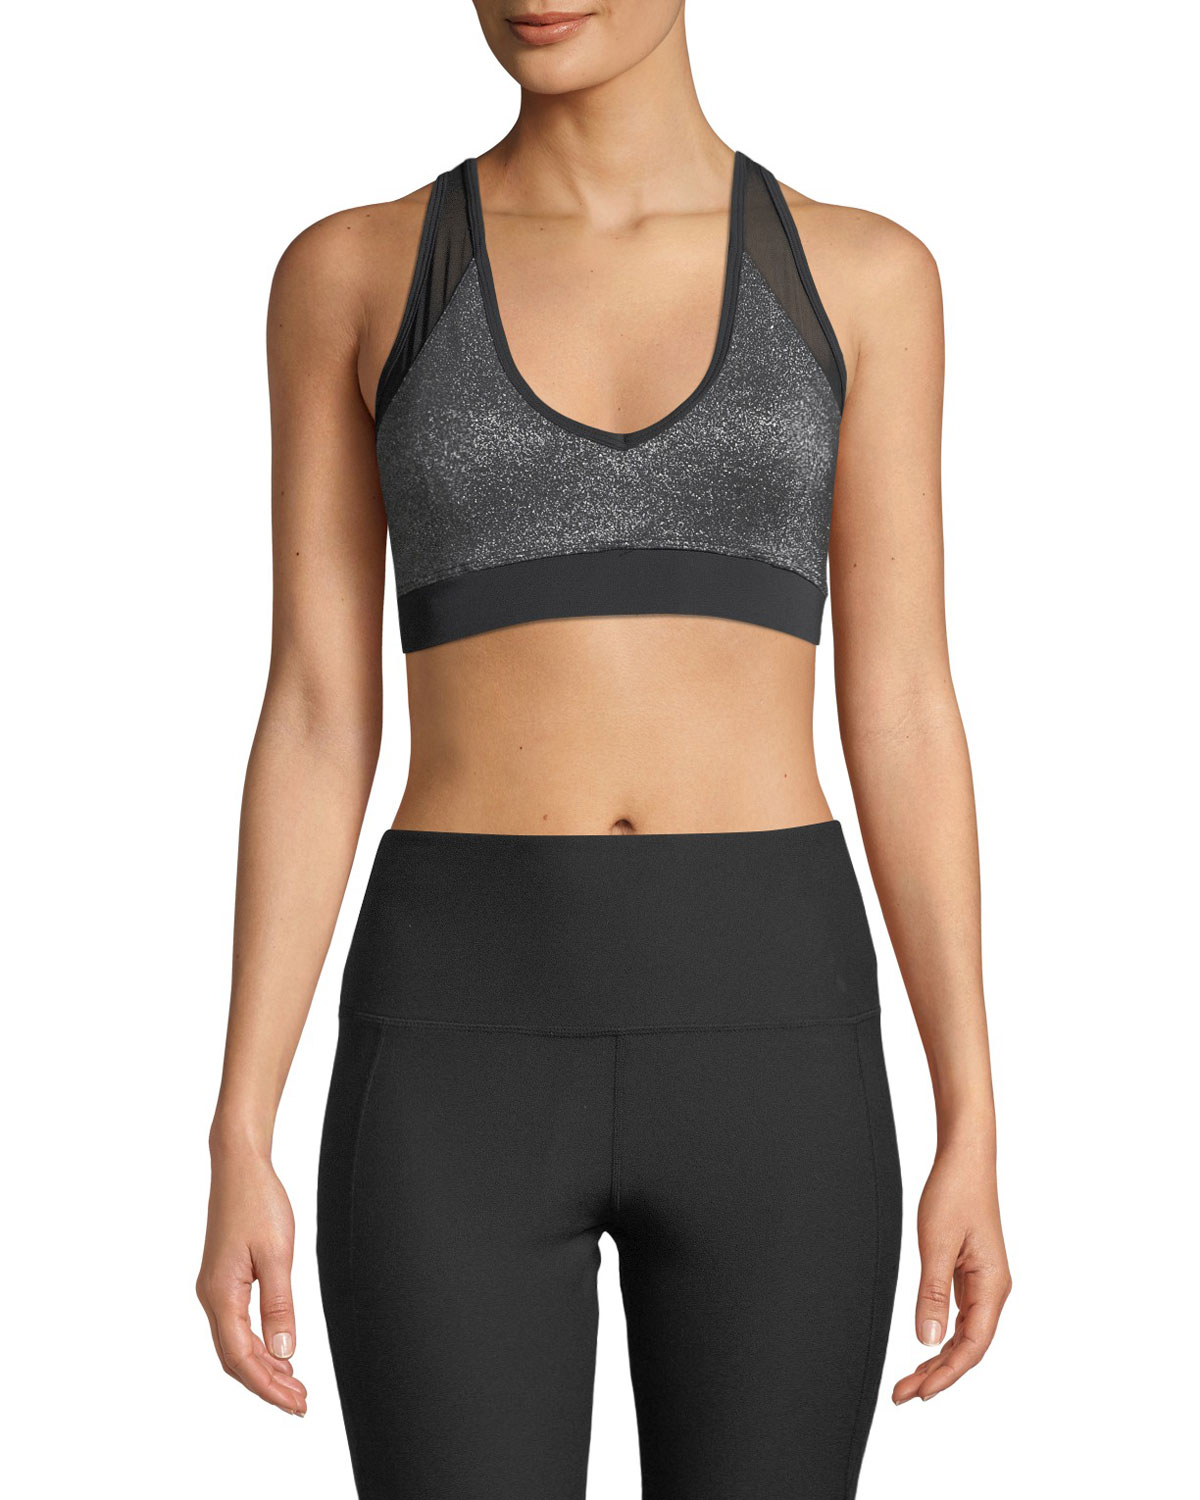 NYLORA Cliff Metallic Mesh Sports Bra in Black/Gray